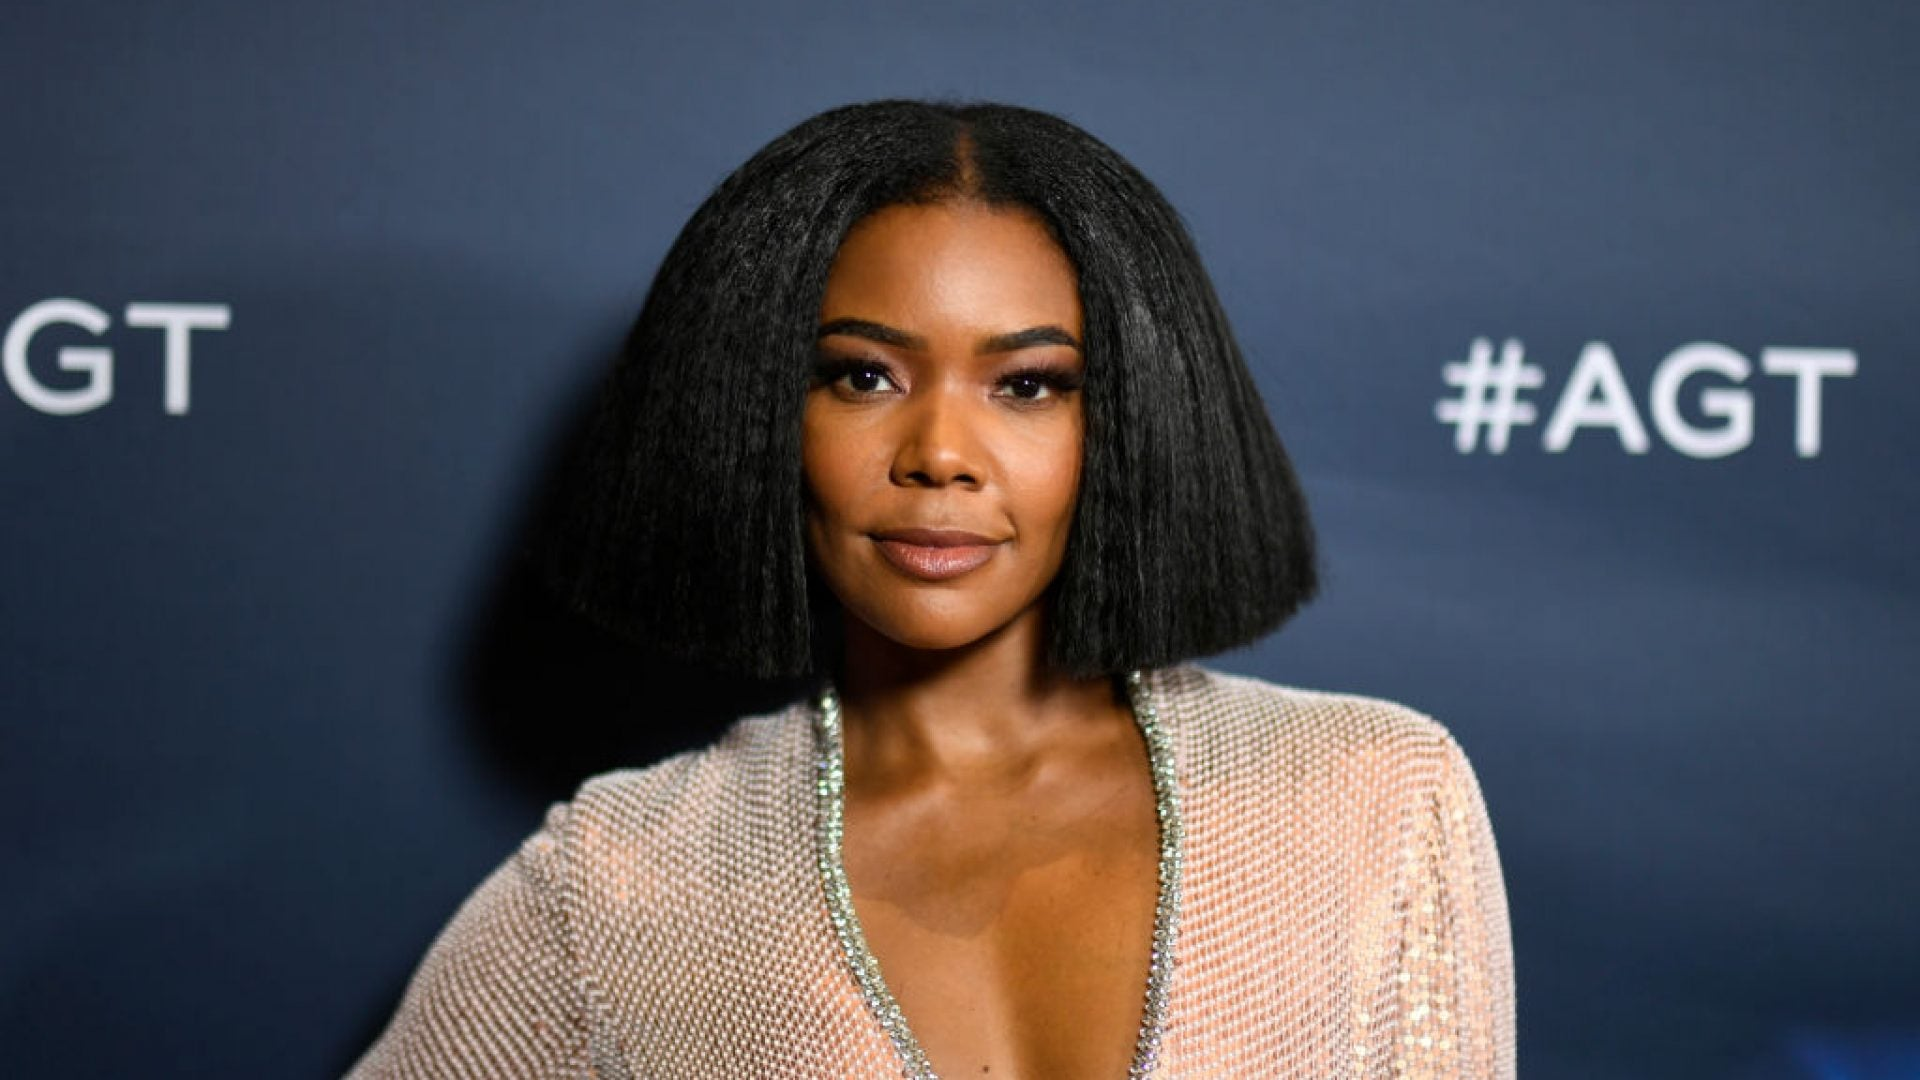 Gabrielle Union Details 'Toxic' Environment At 'America's Got Talent'